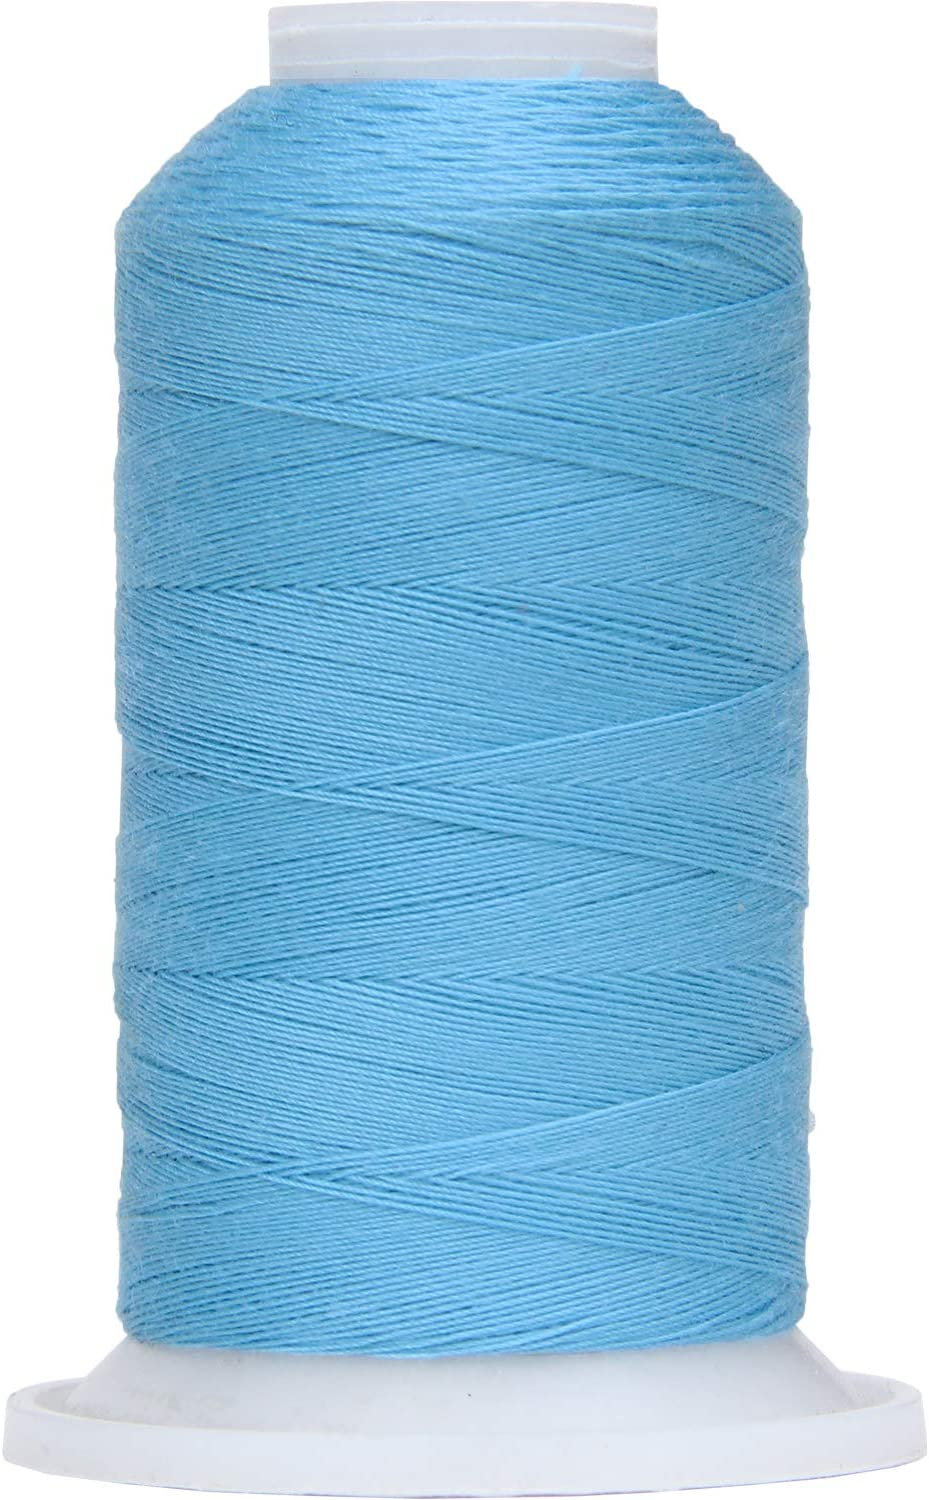 New High Quality 1 X Blue Steel Grey 200m Cotton Sewing Thread For Hand//Machine